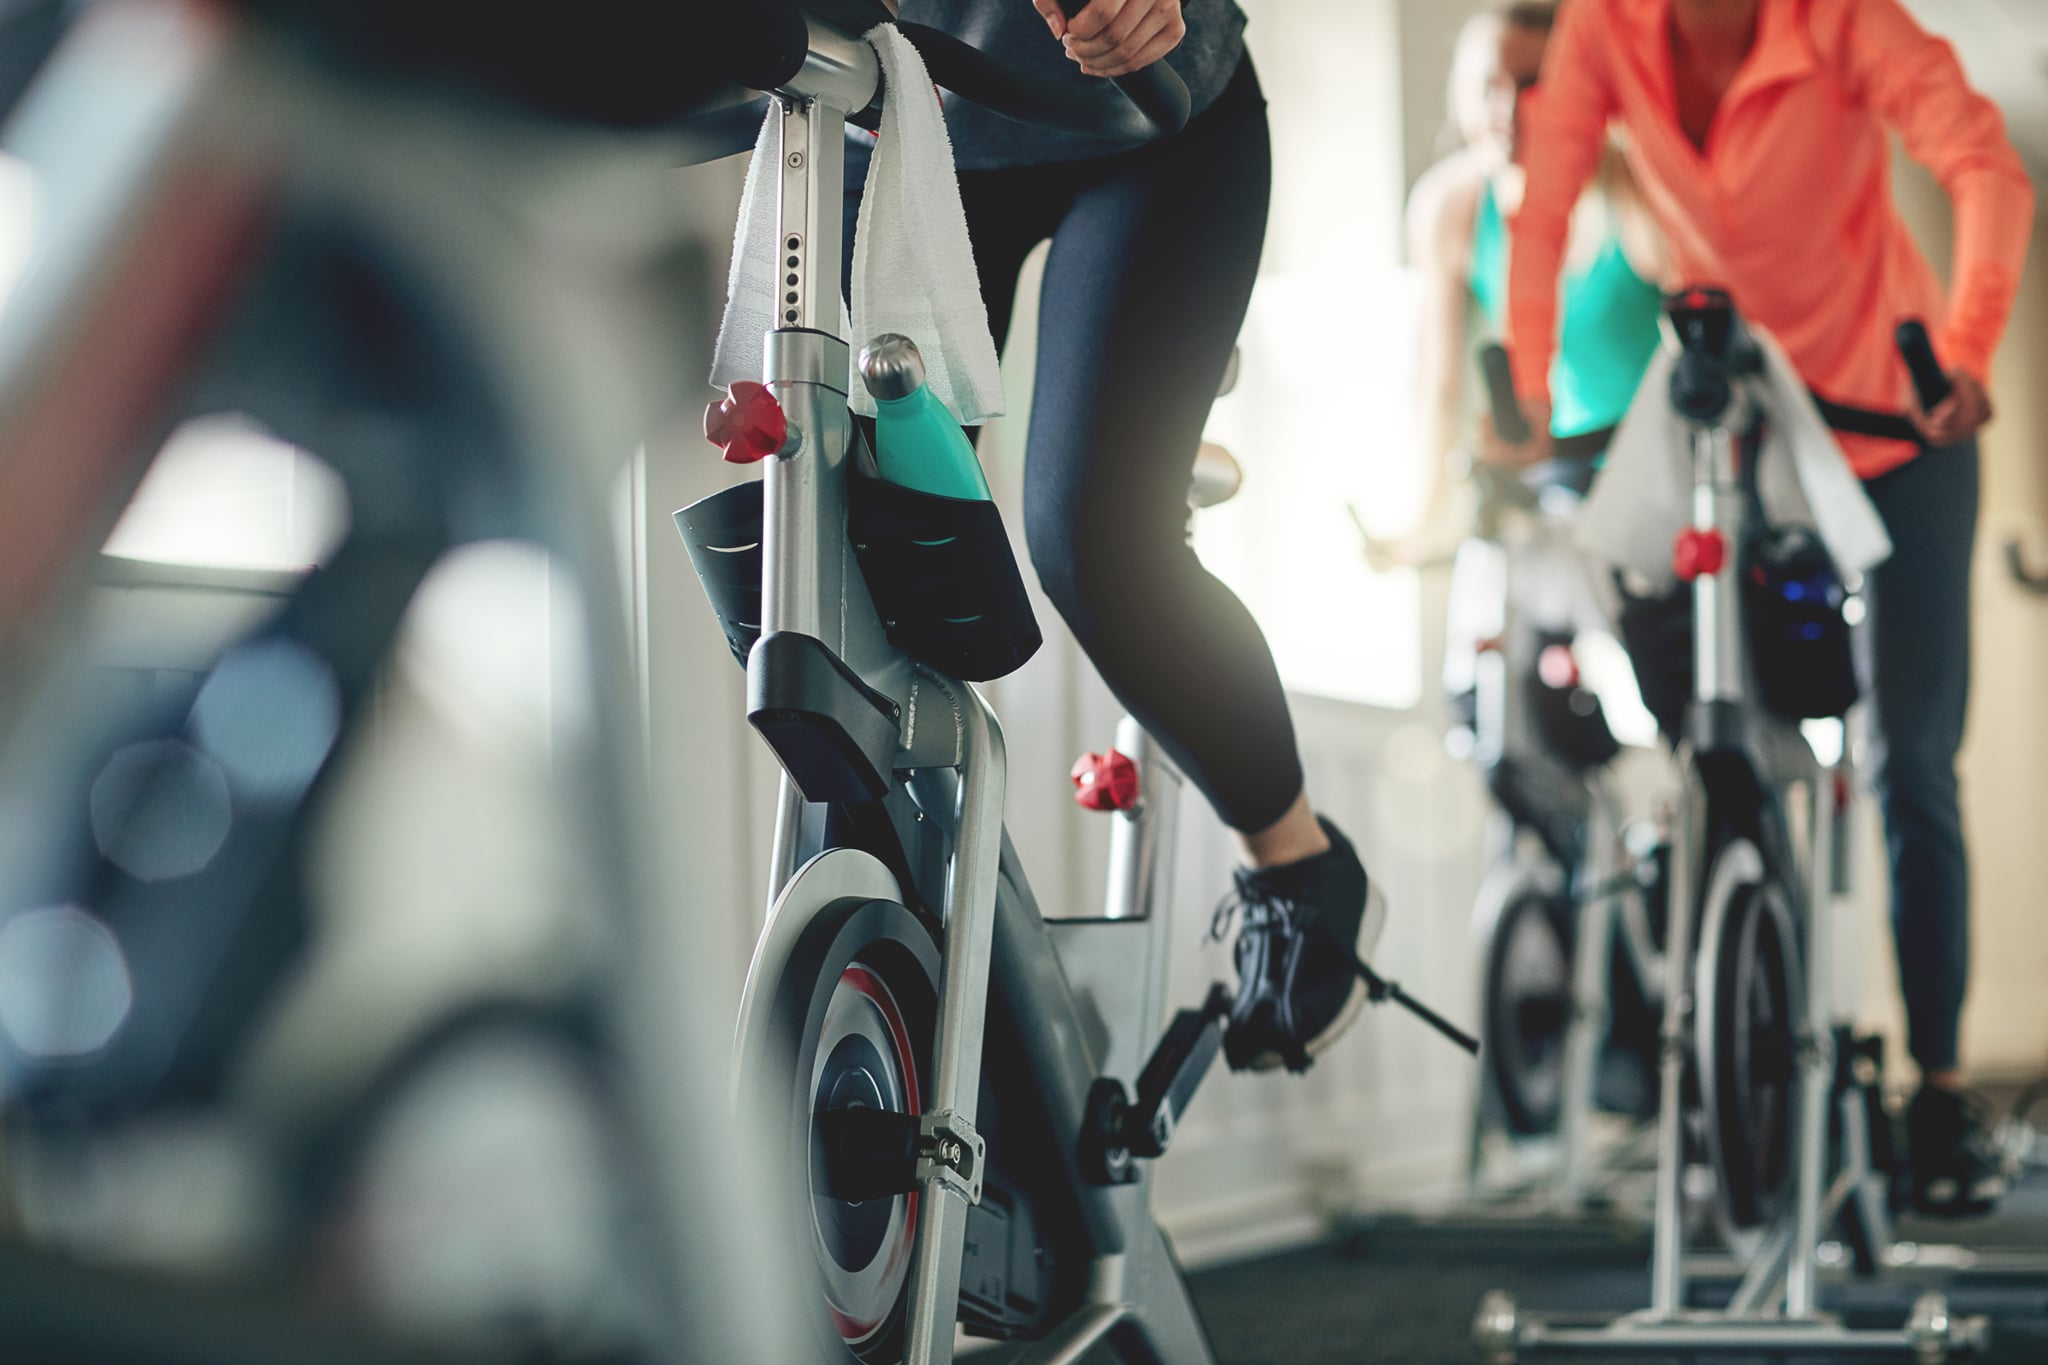 Spin, Sweat, Repeat: This 40-Minute Playlist Is Your New Indoor Cycling Soundtrack